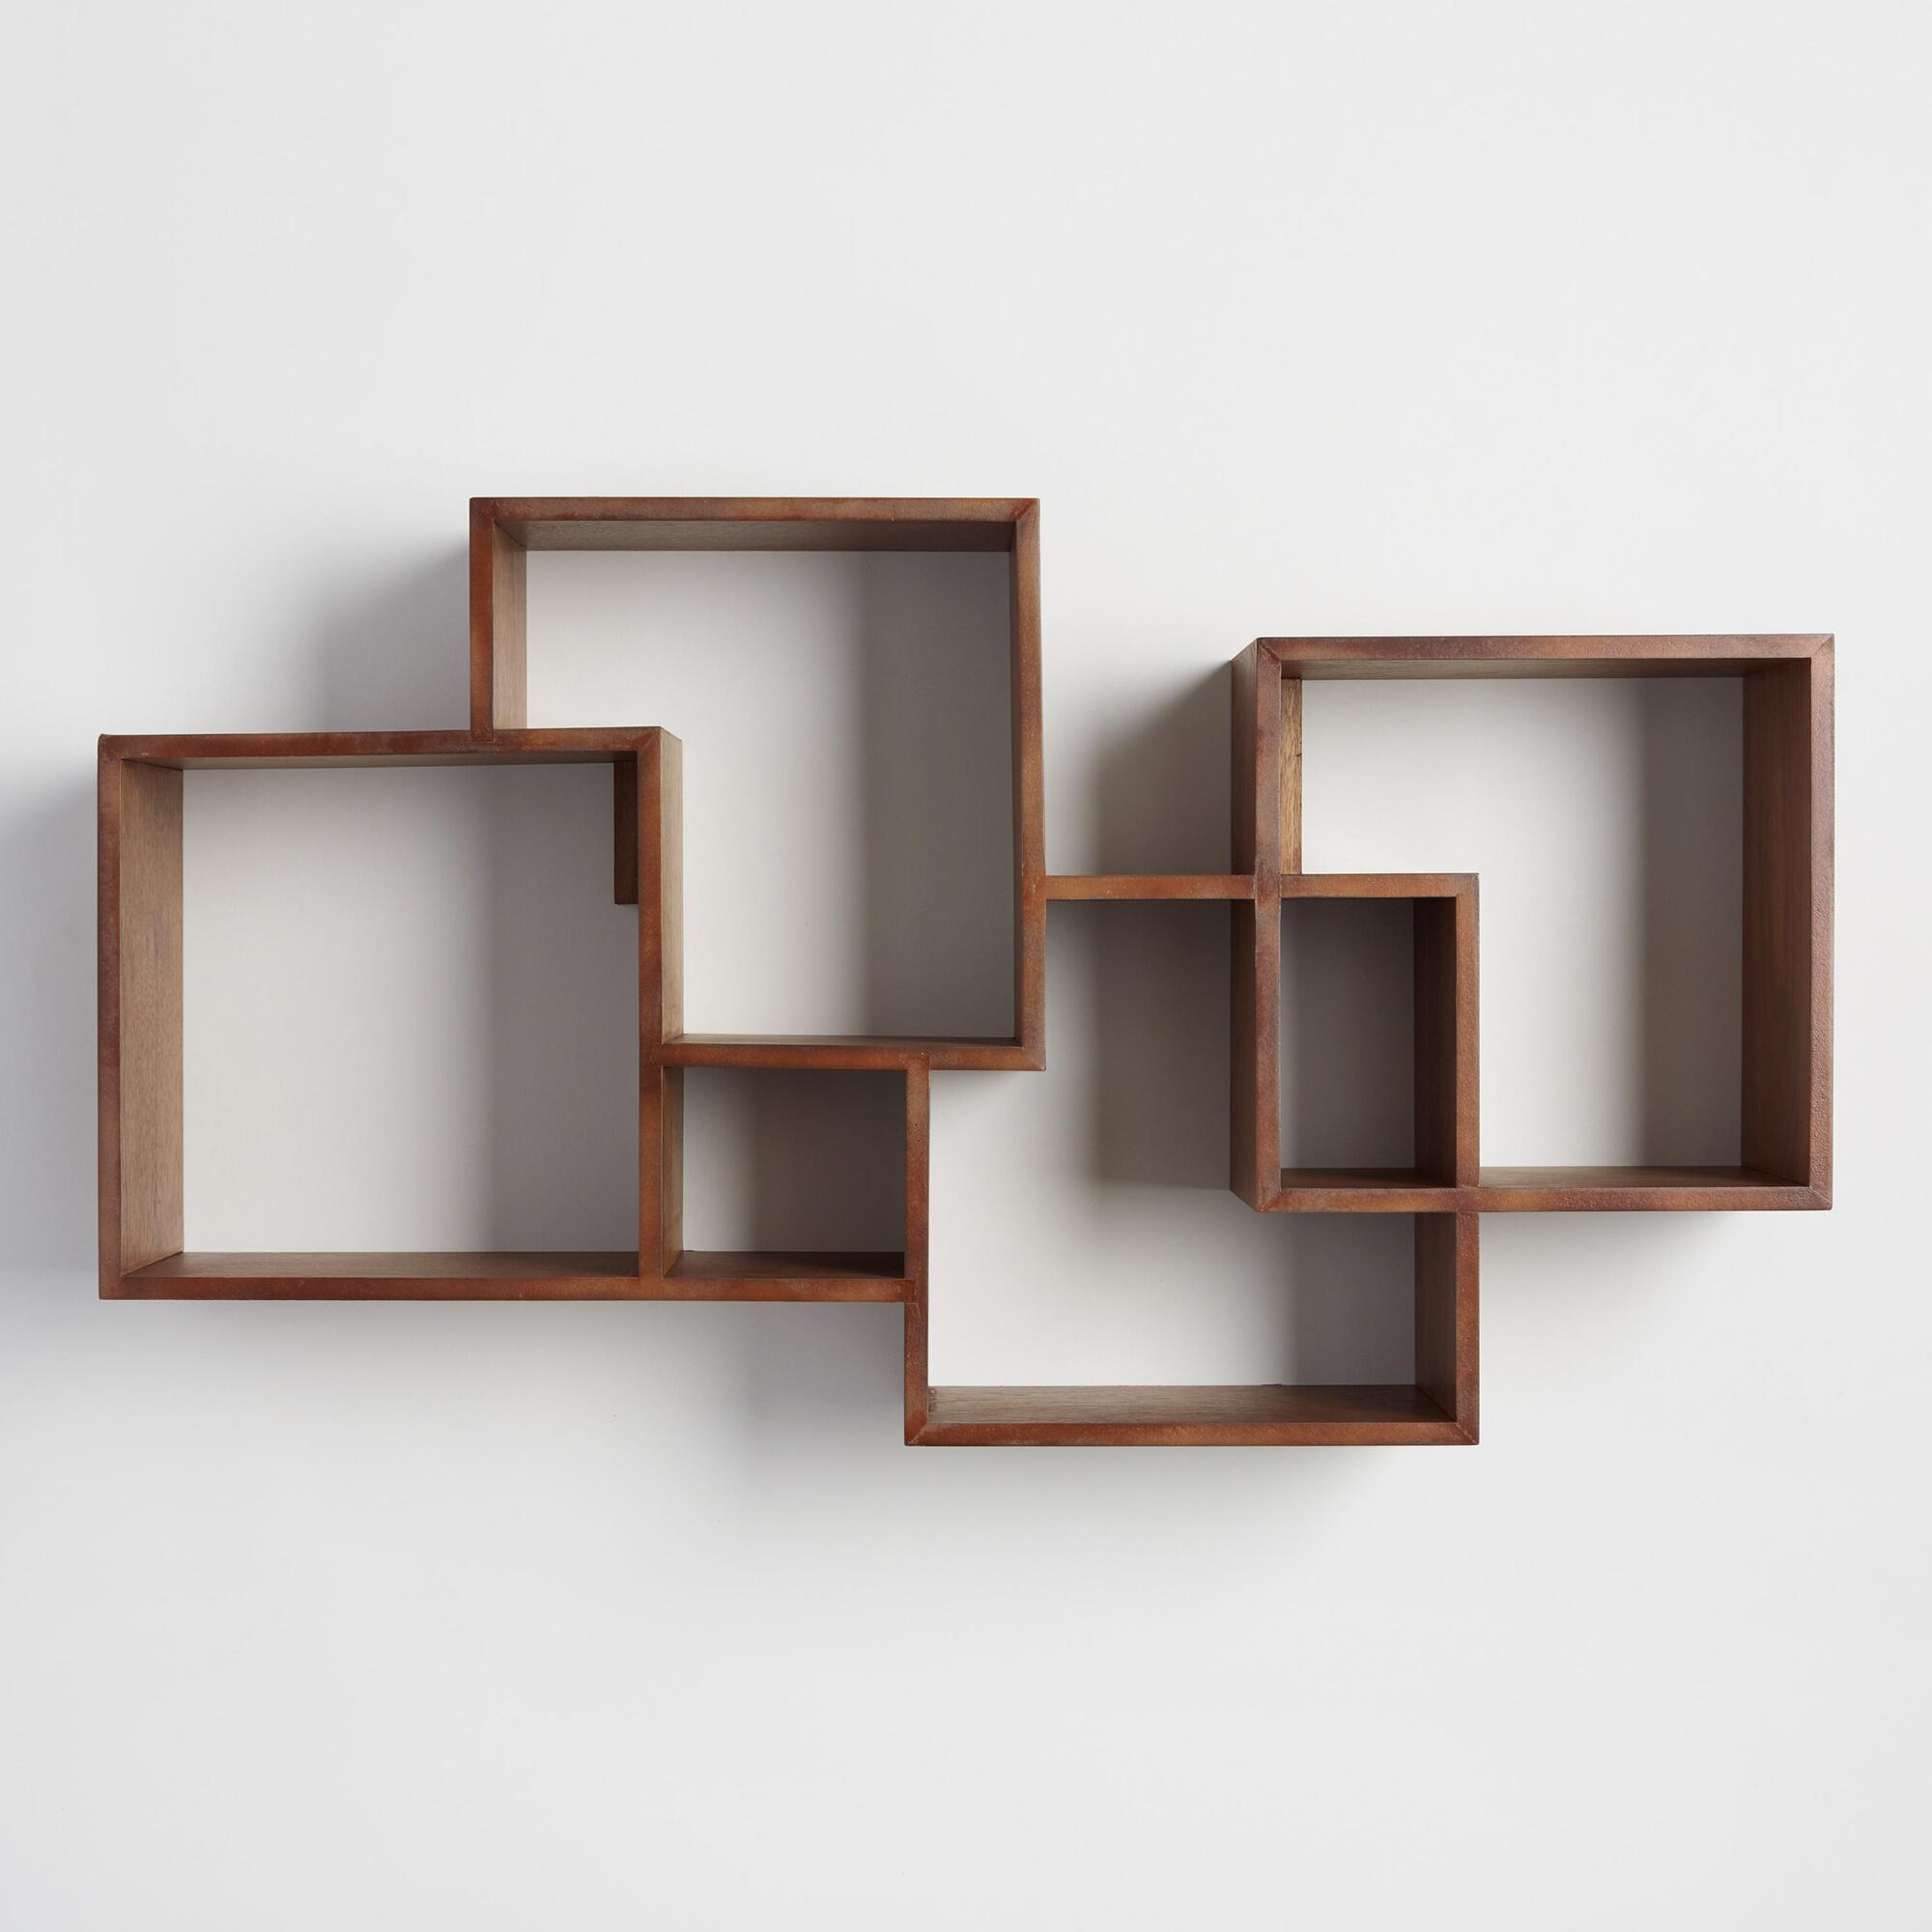 Featuring Four Cubbies And Two Smaller Niches This Artistic Wall Mounted Wood Shelf With Rich Walnut Finish Exudes Midcentury Modern Charm Provides A